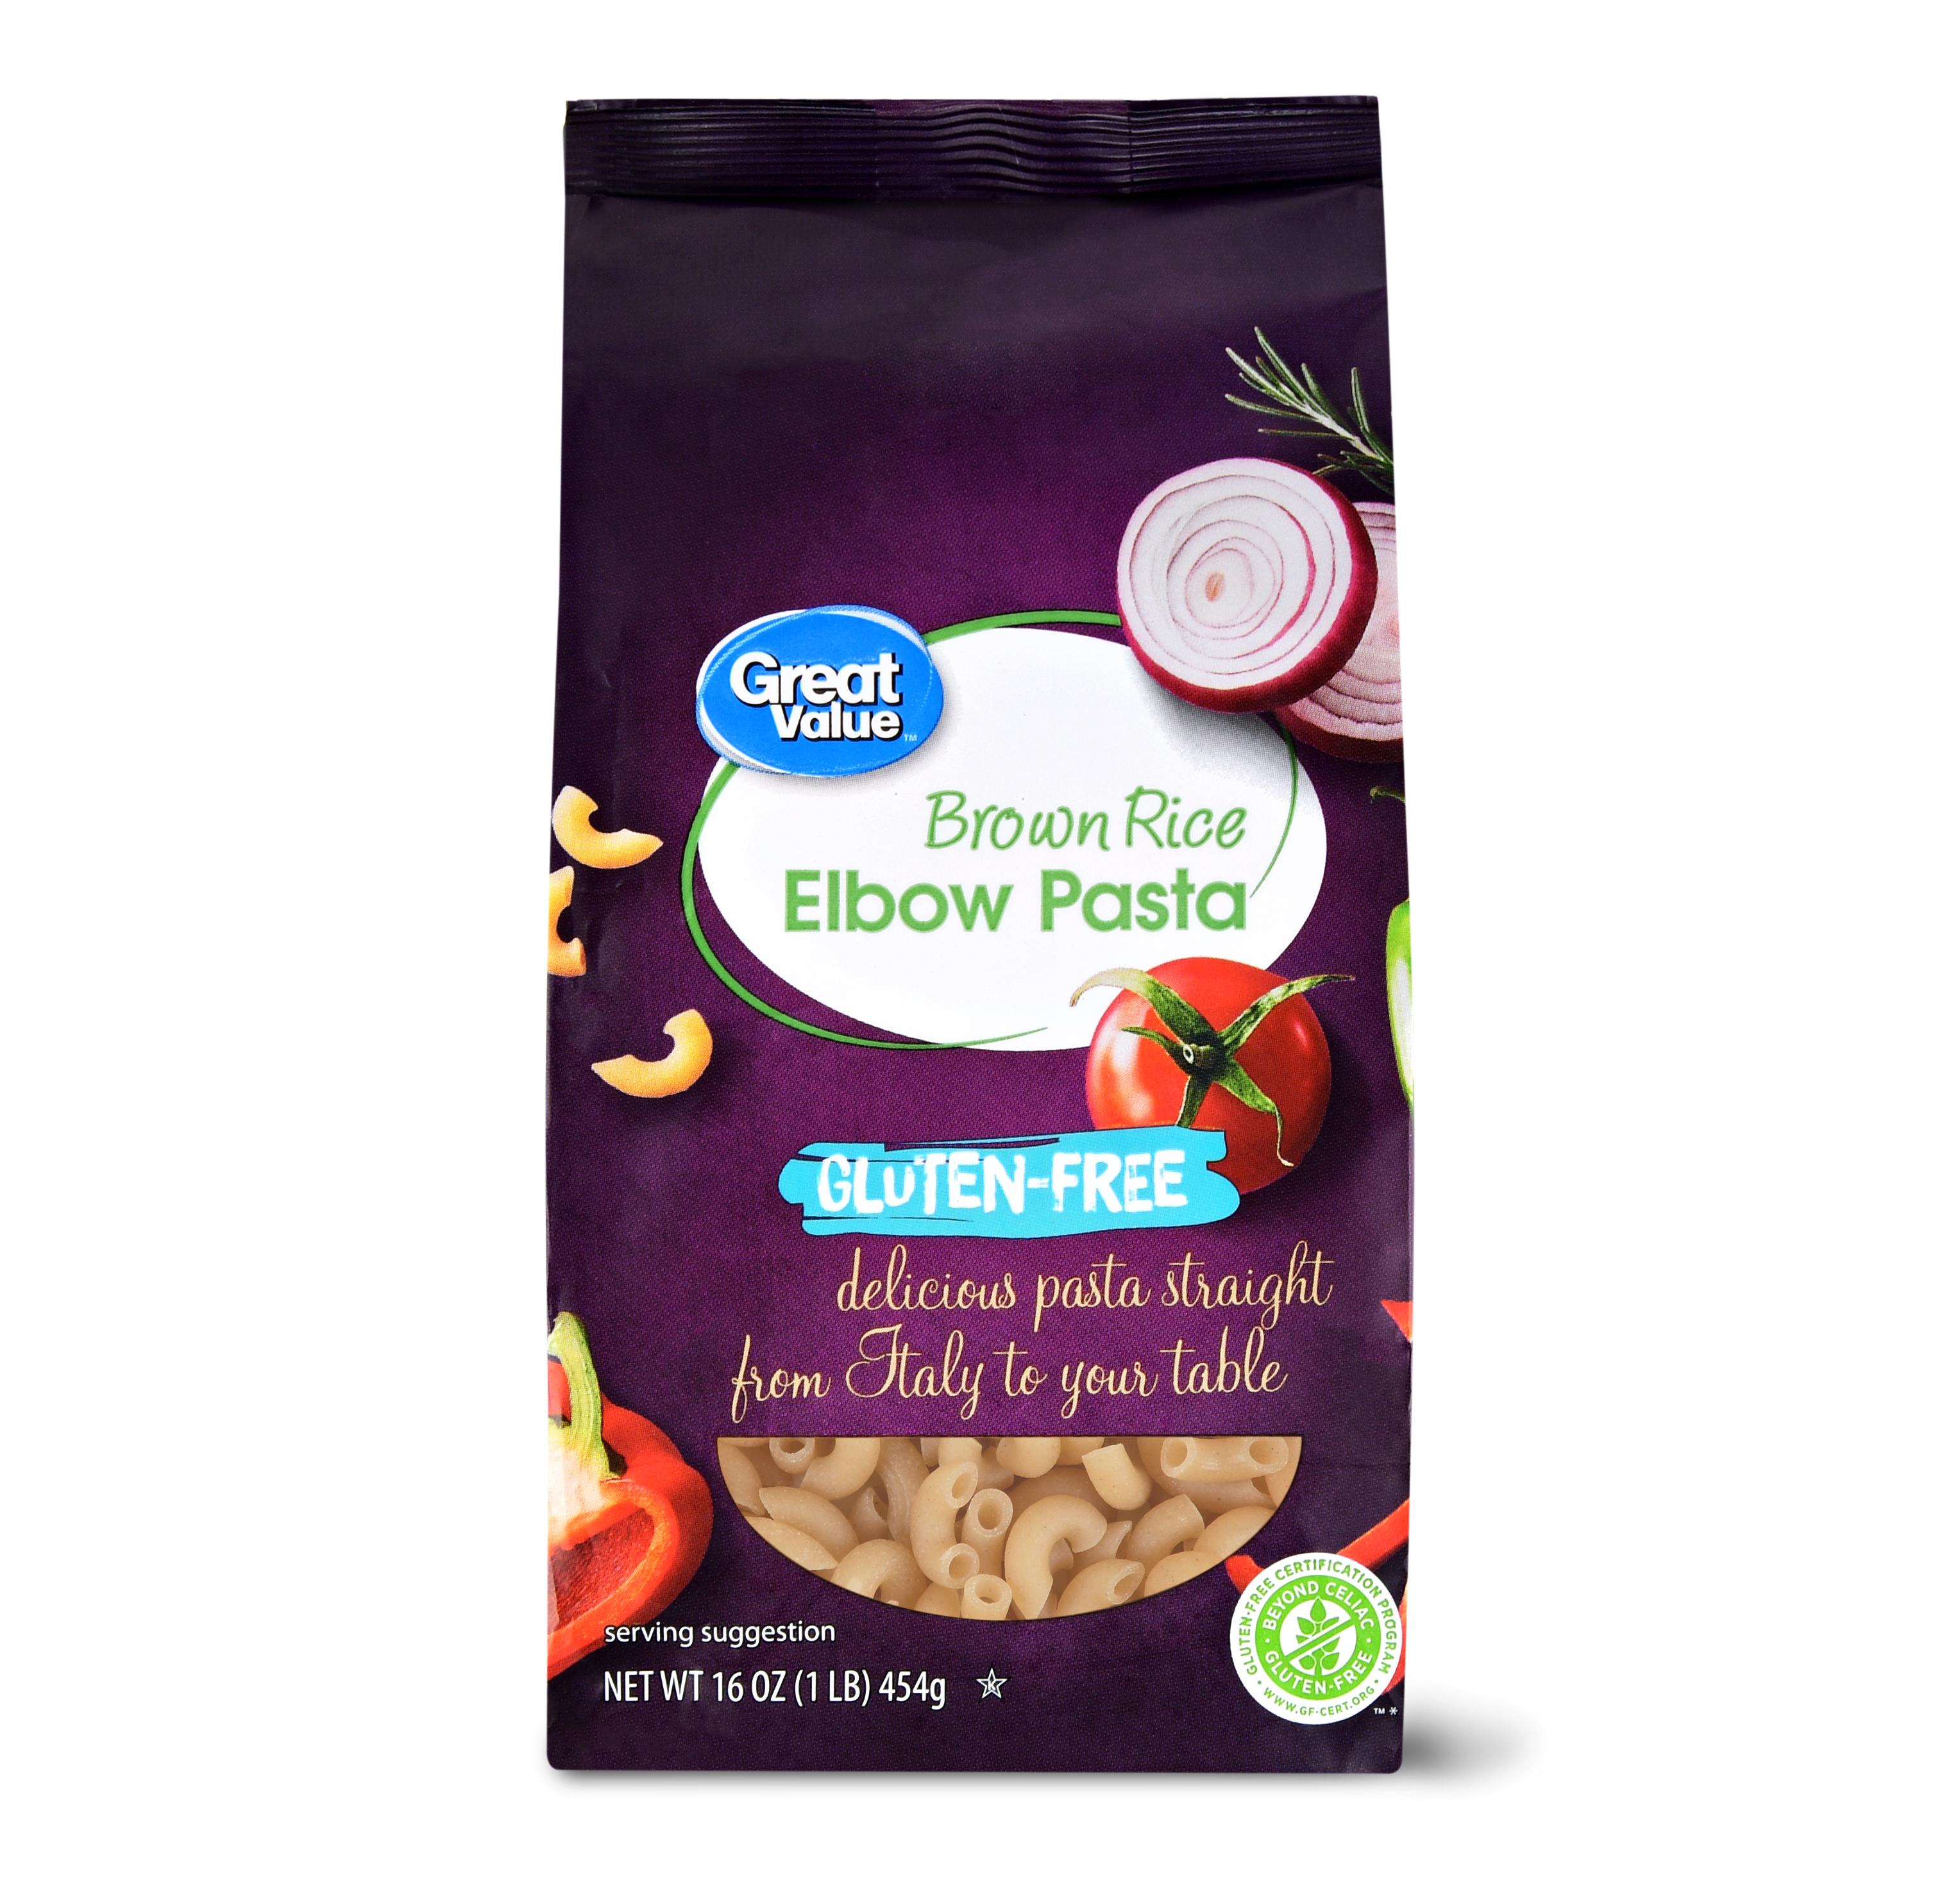 (6 Packs) Great Value Gluten-Free Brown Rice Elbow Pasta, 1lb - $1.66/lb